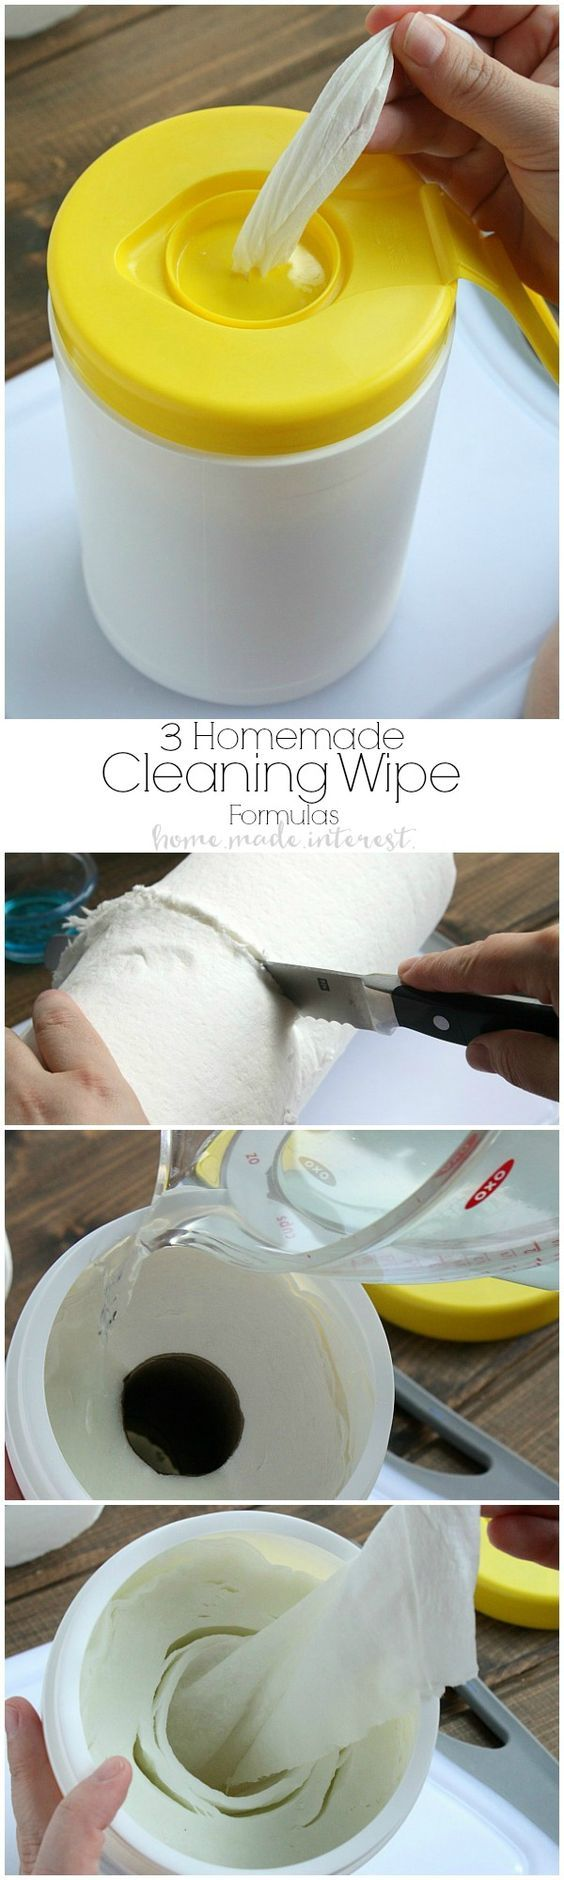 A tutorial on how to make homemade cleaning wipes in three